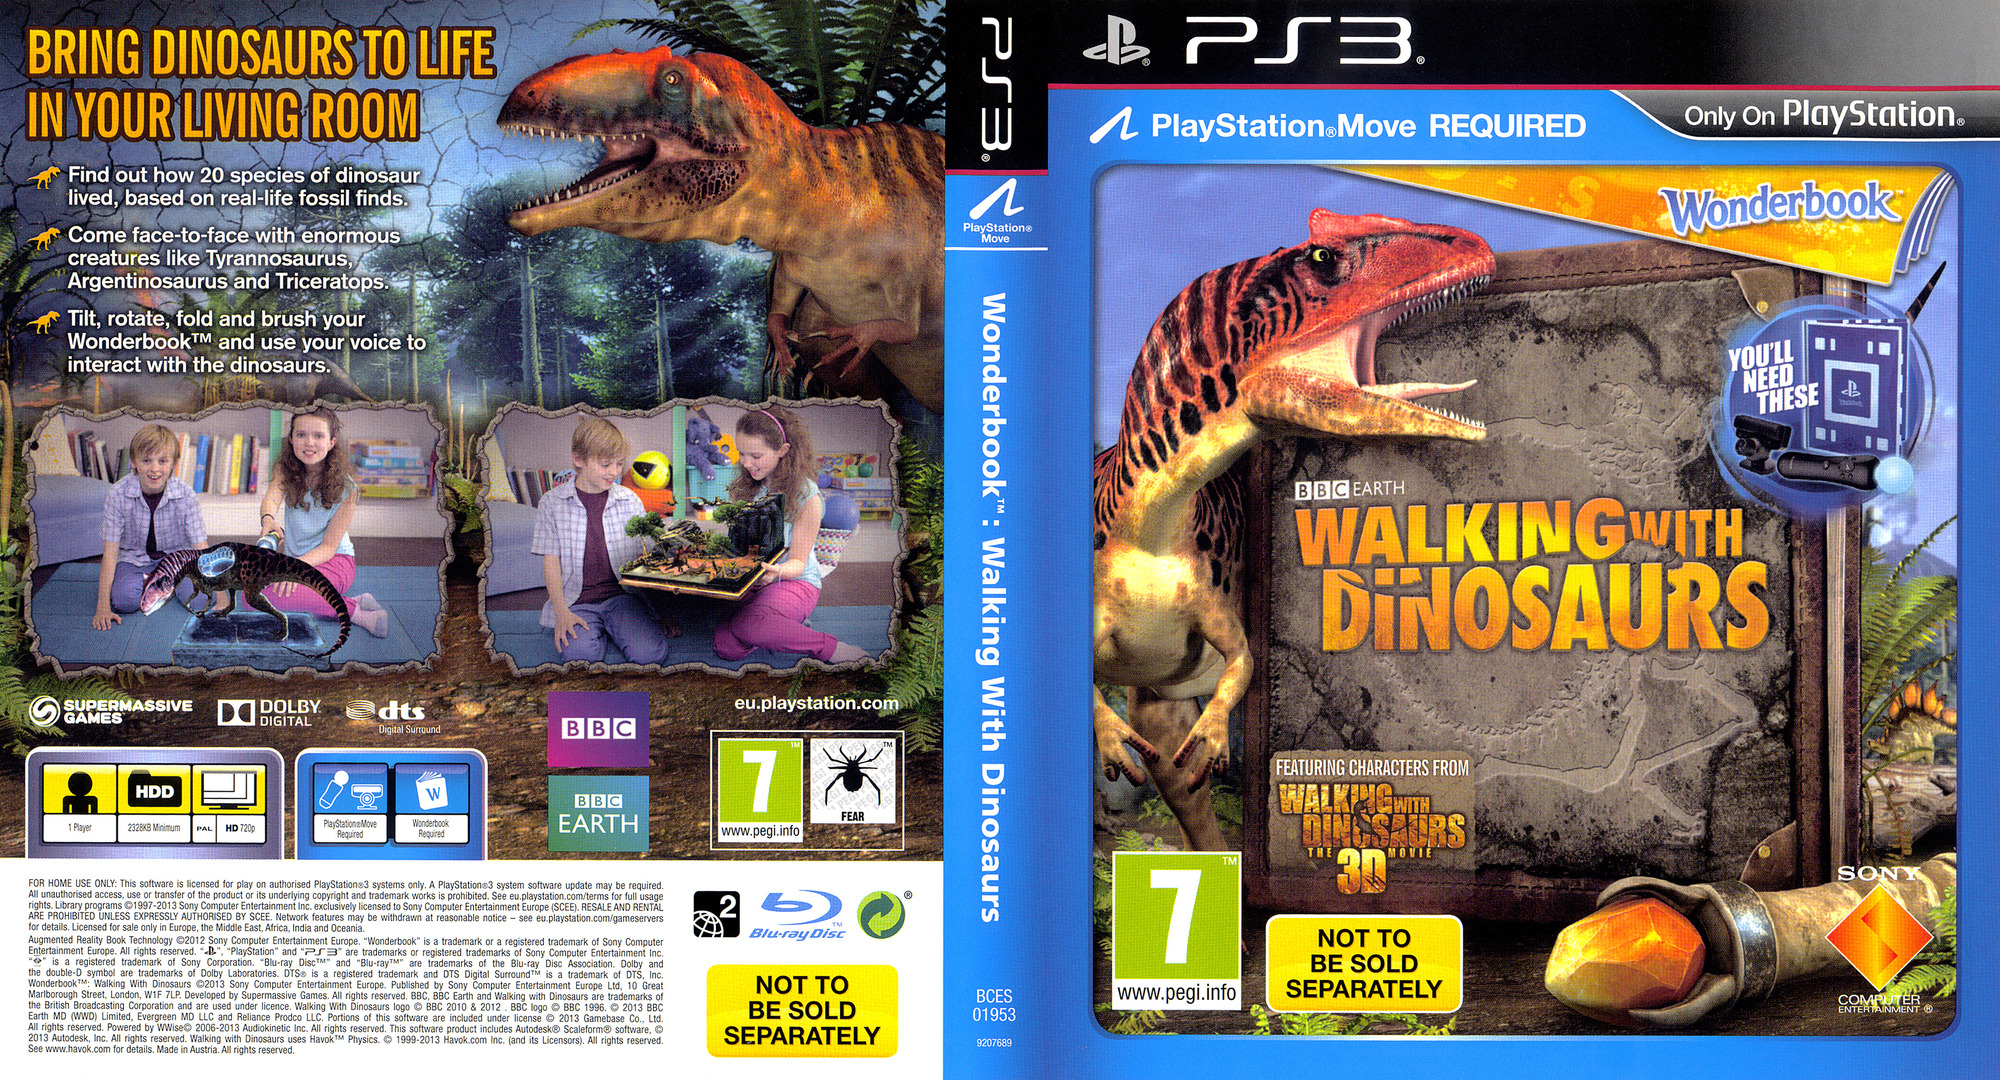 Wonderbook: Walking with Dinosaurs PS3 coverfullHQ (BCES01953)